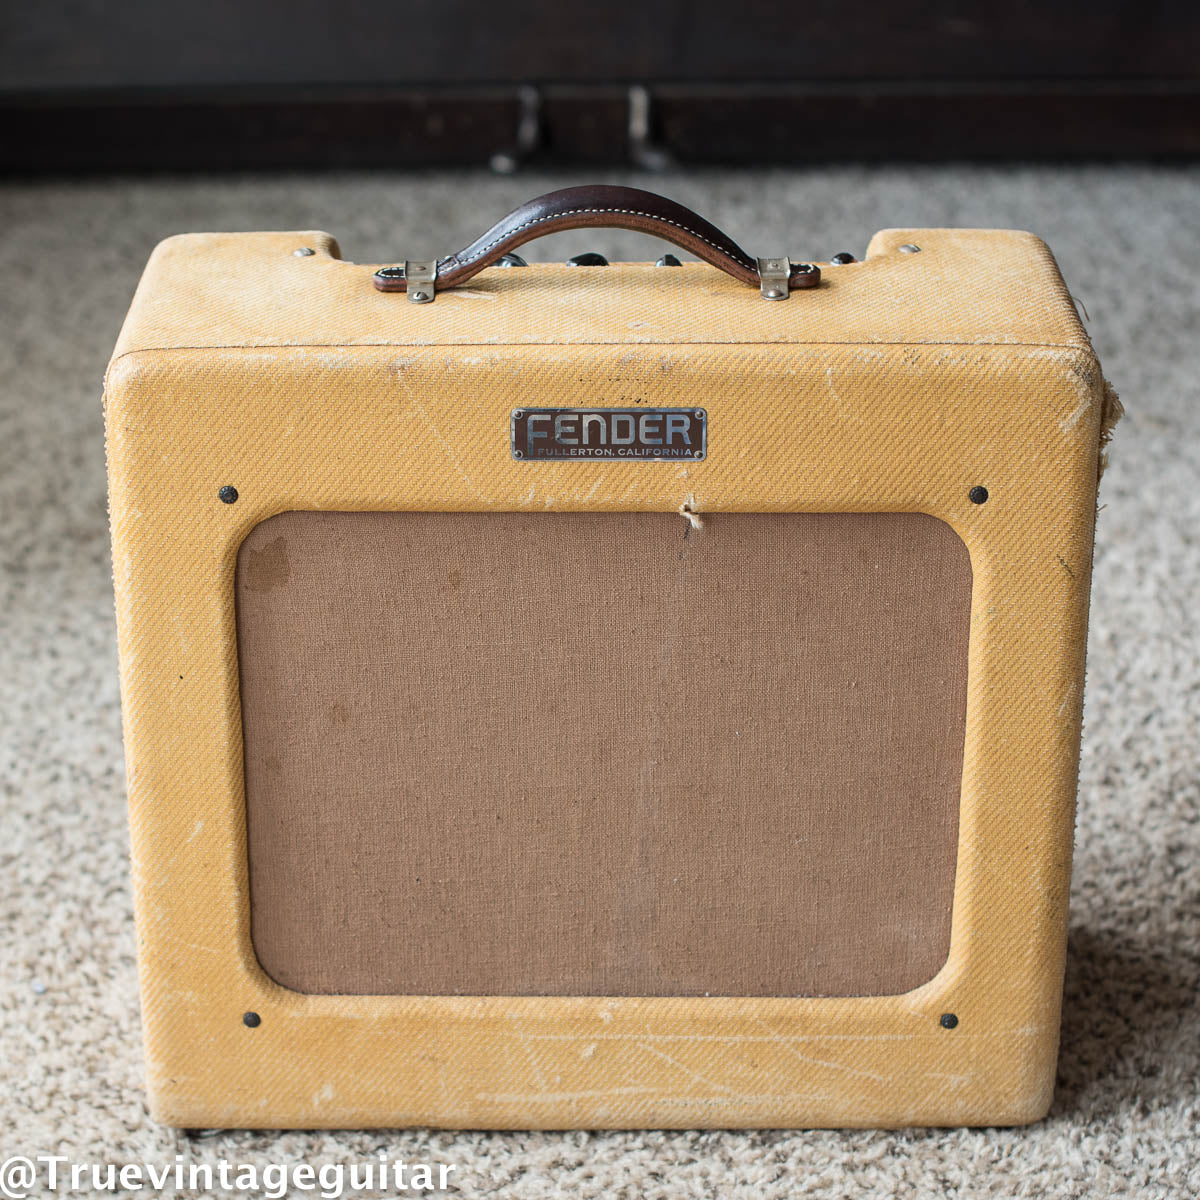 1950 Fender Deluxe Amp tweed vintage guitar amplifier